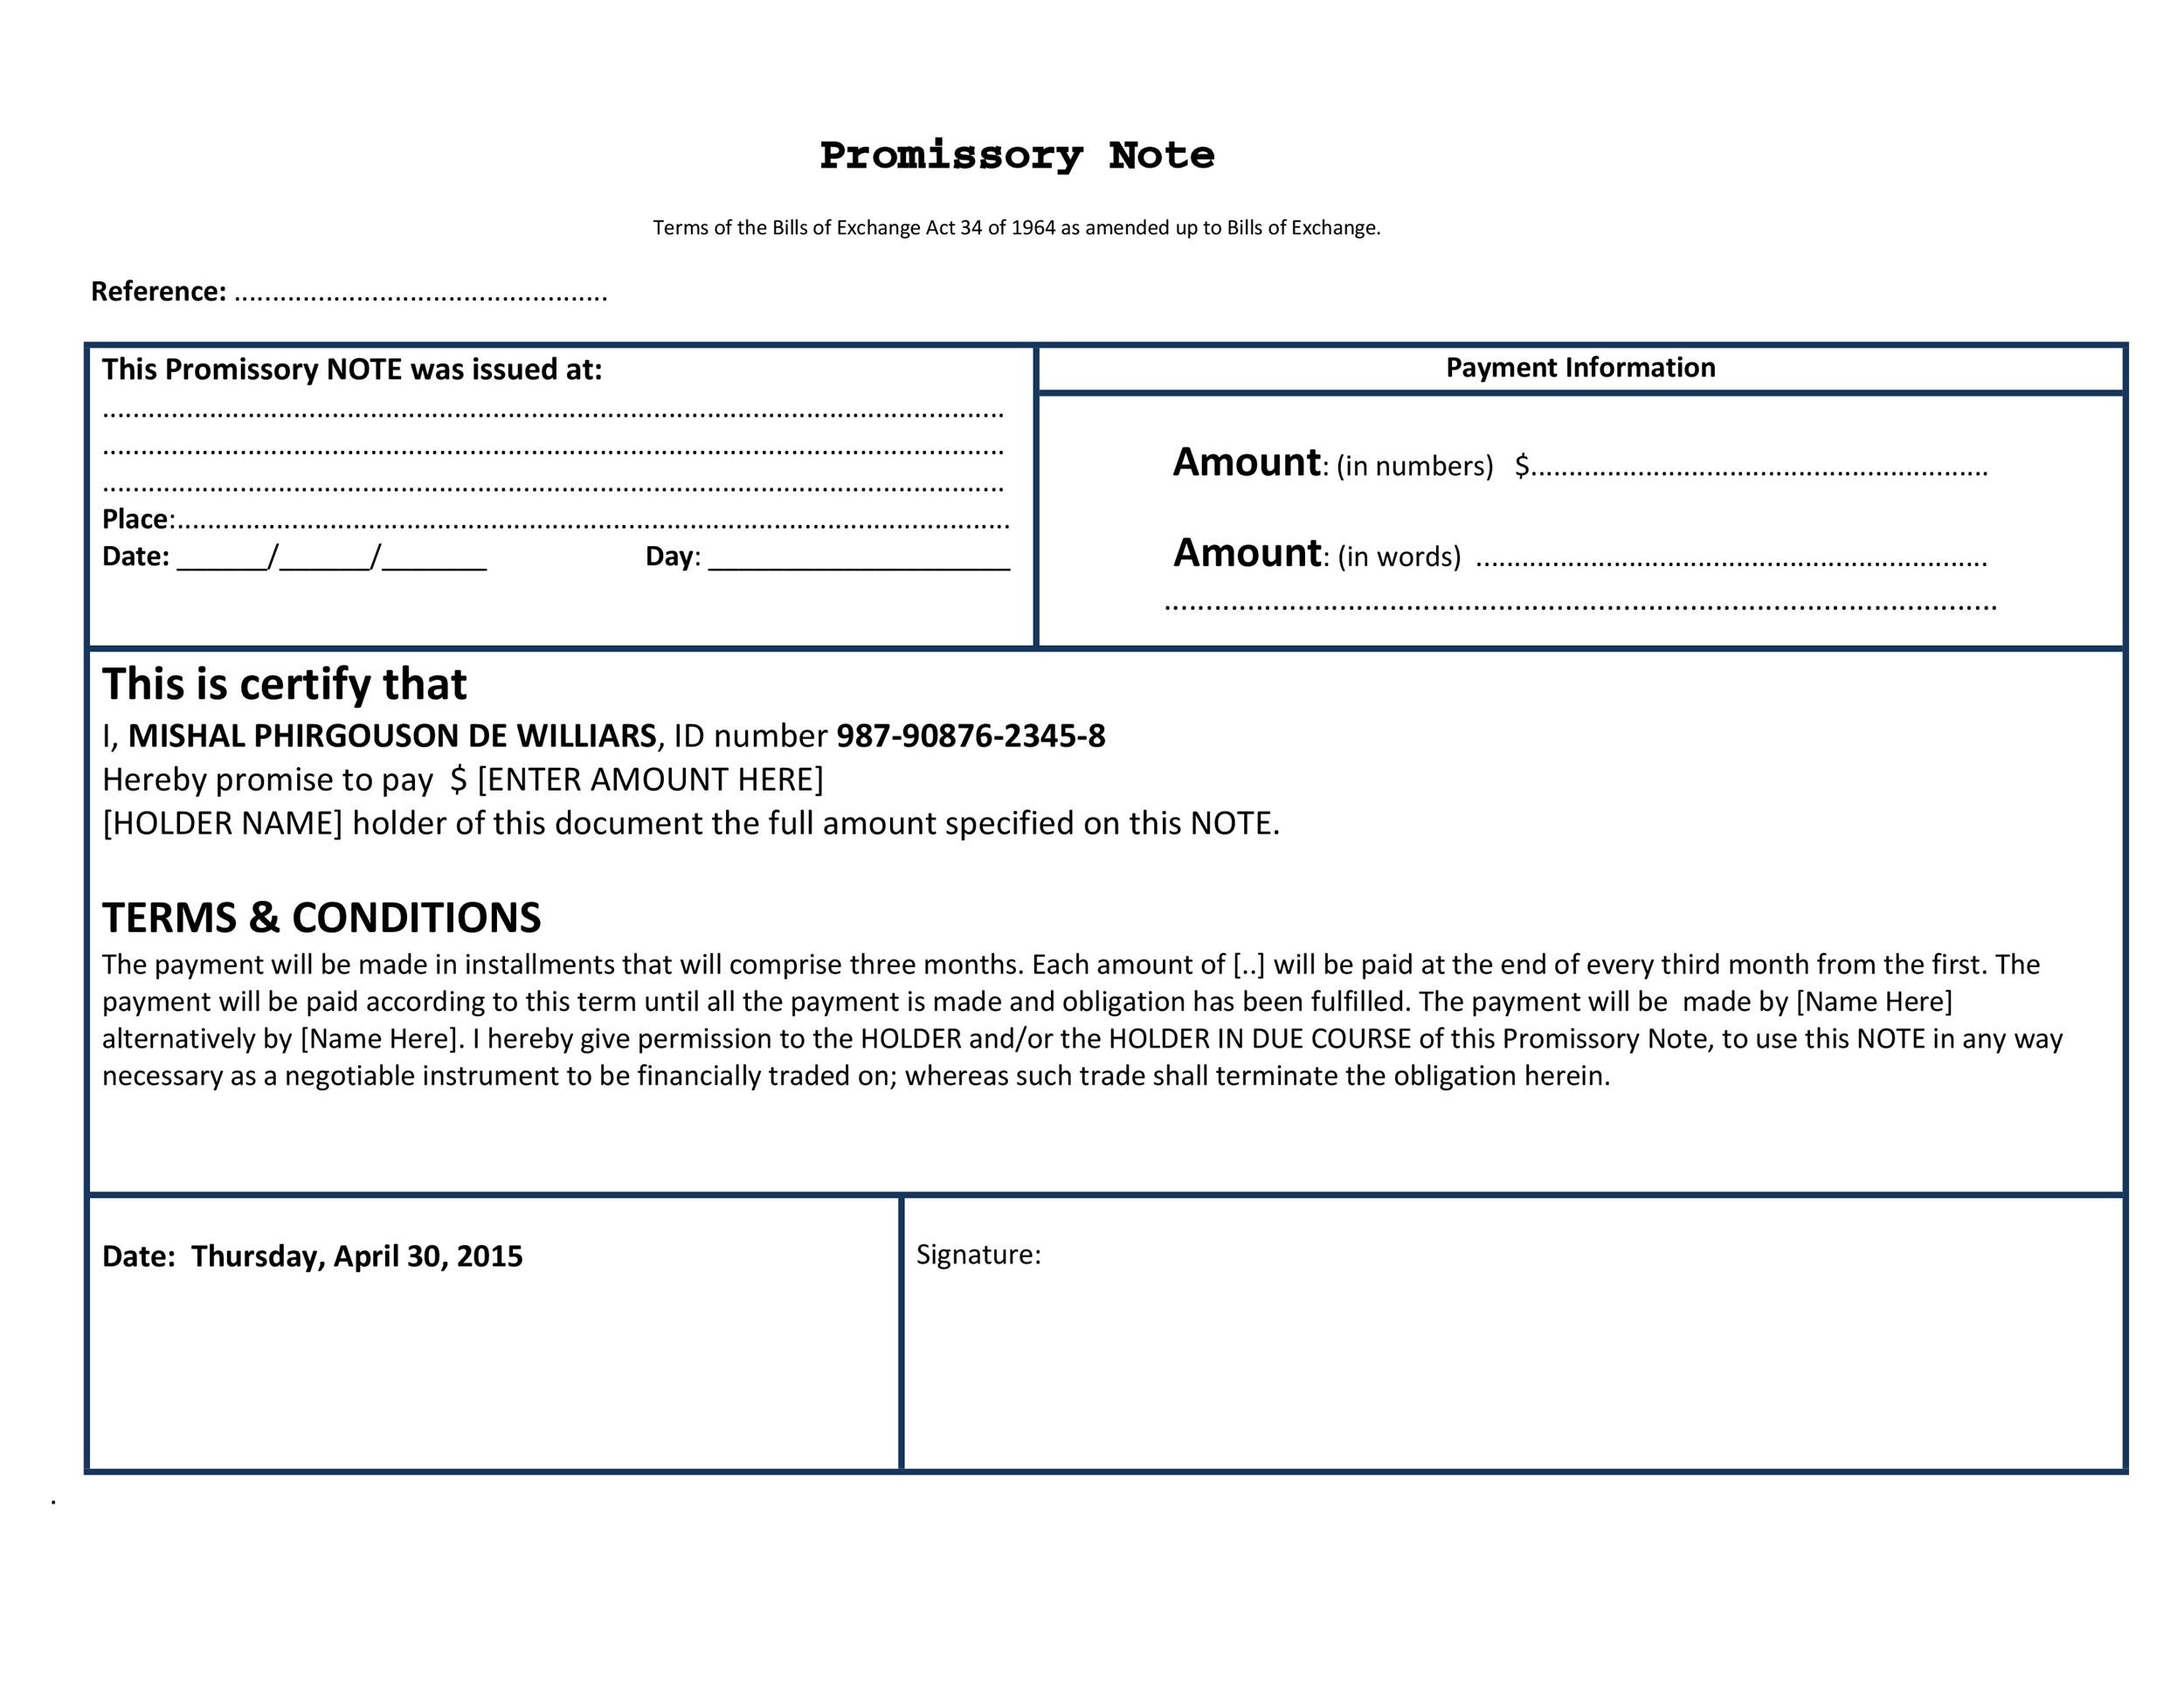 45 FREE Promissory Note Templates  Forms Word  PDF - Template Lab - free sample promissory note